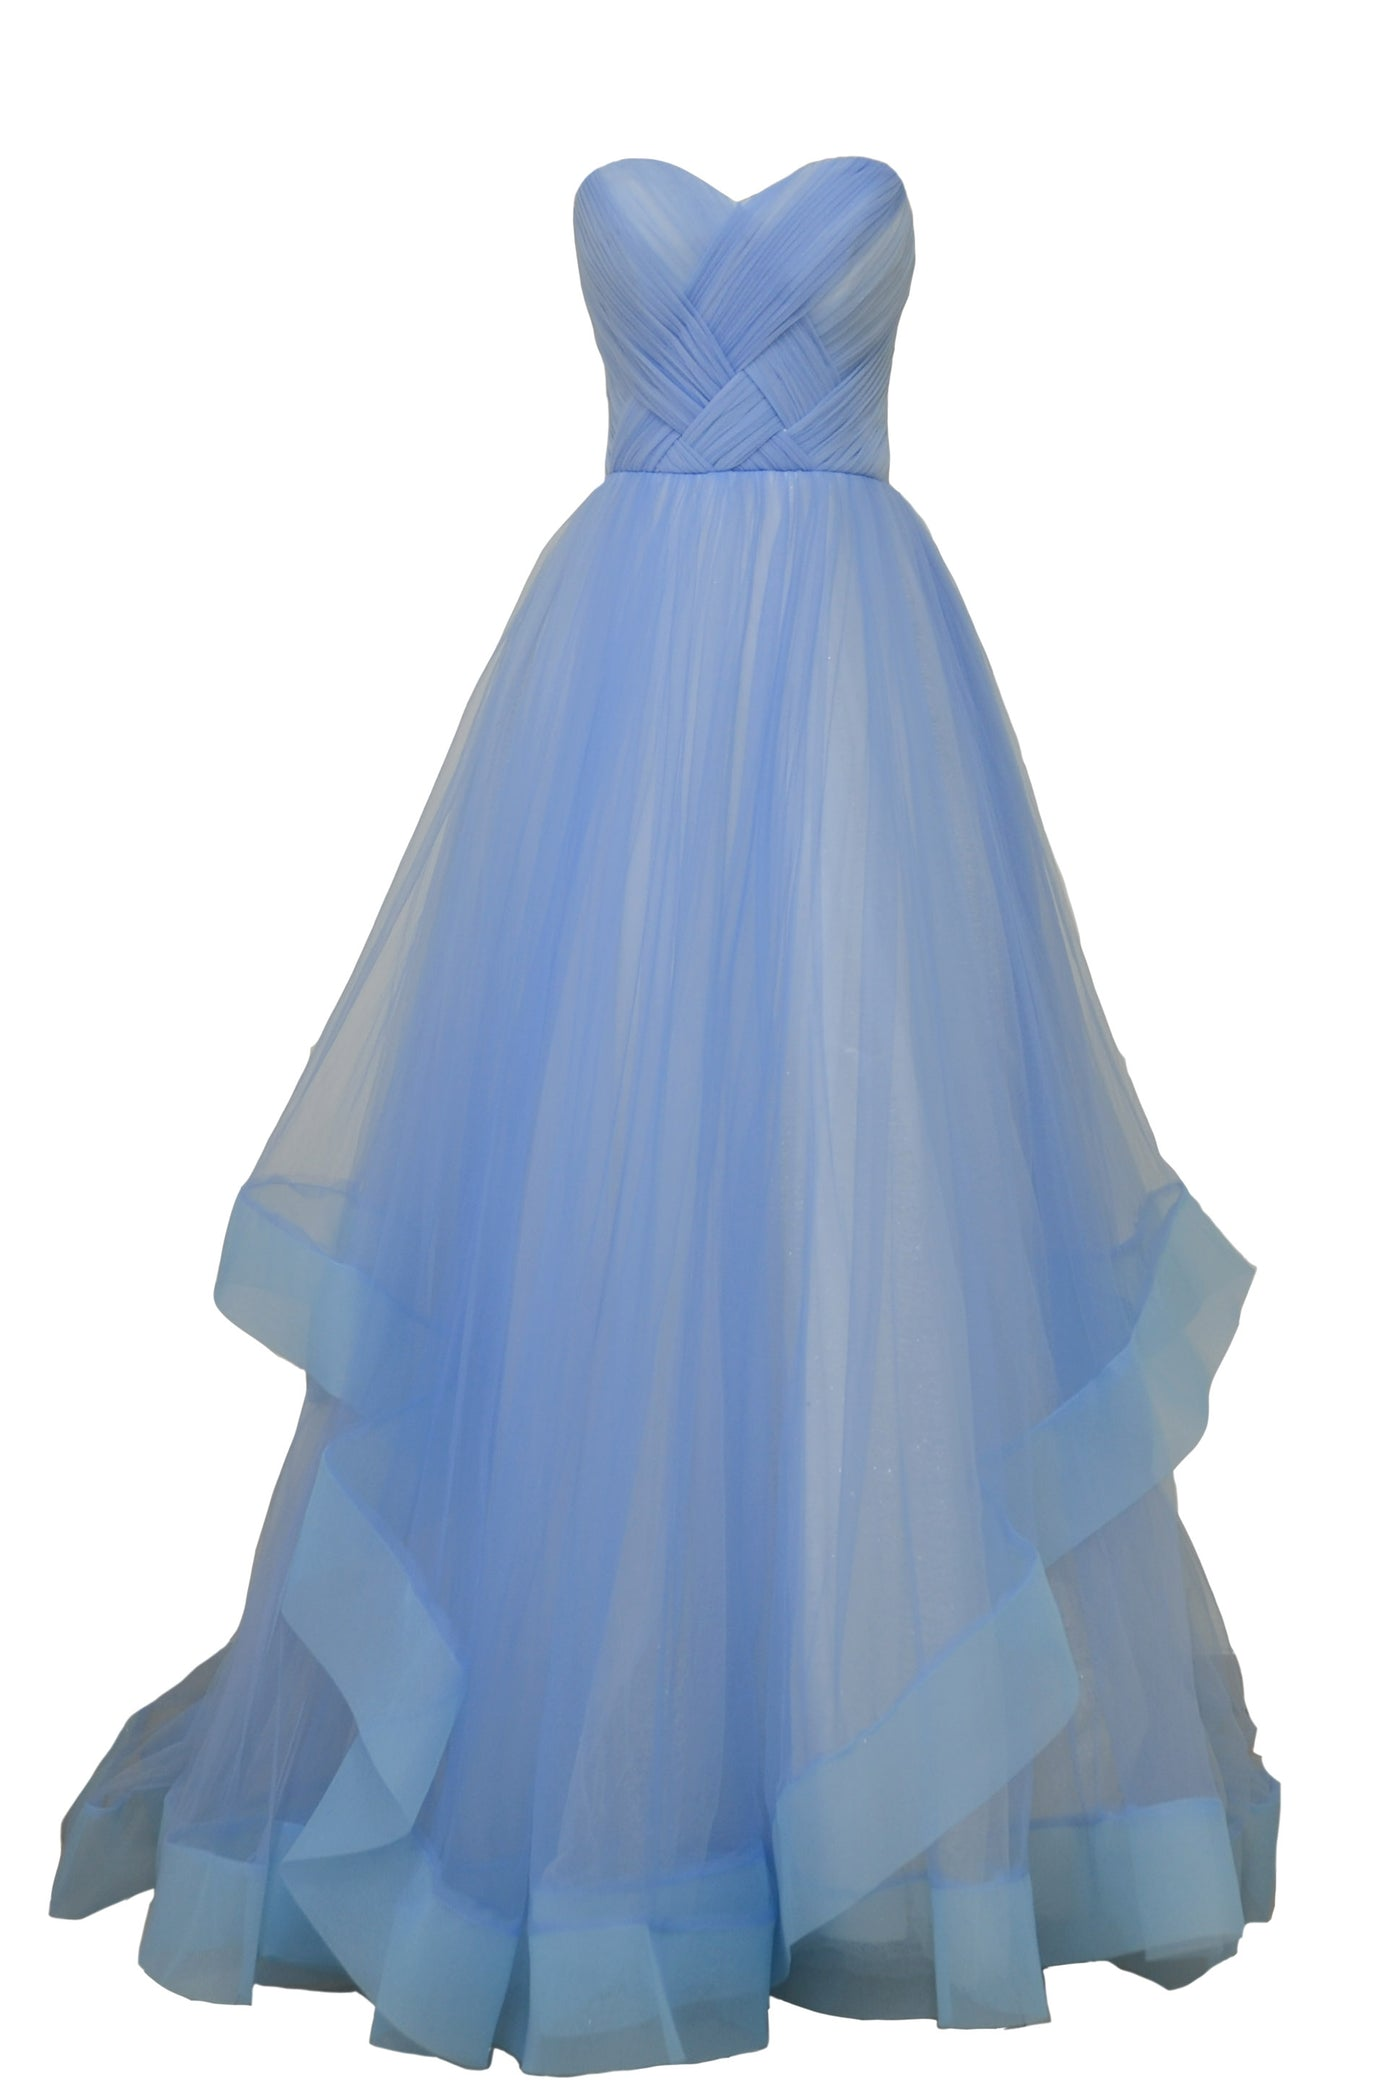 Rent: Private Label Blue Sweetheart Tulle Dress